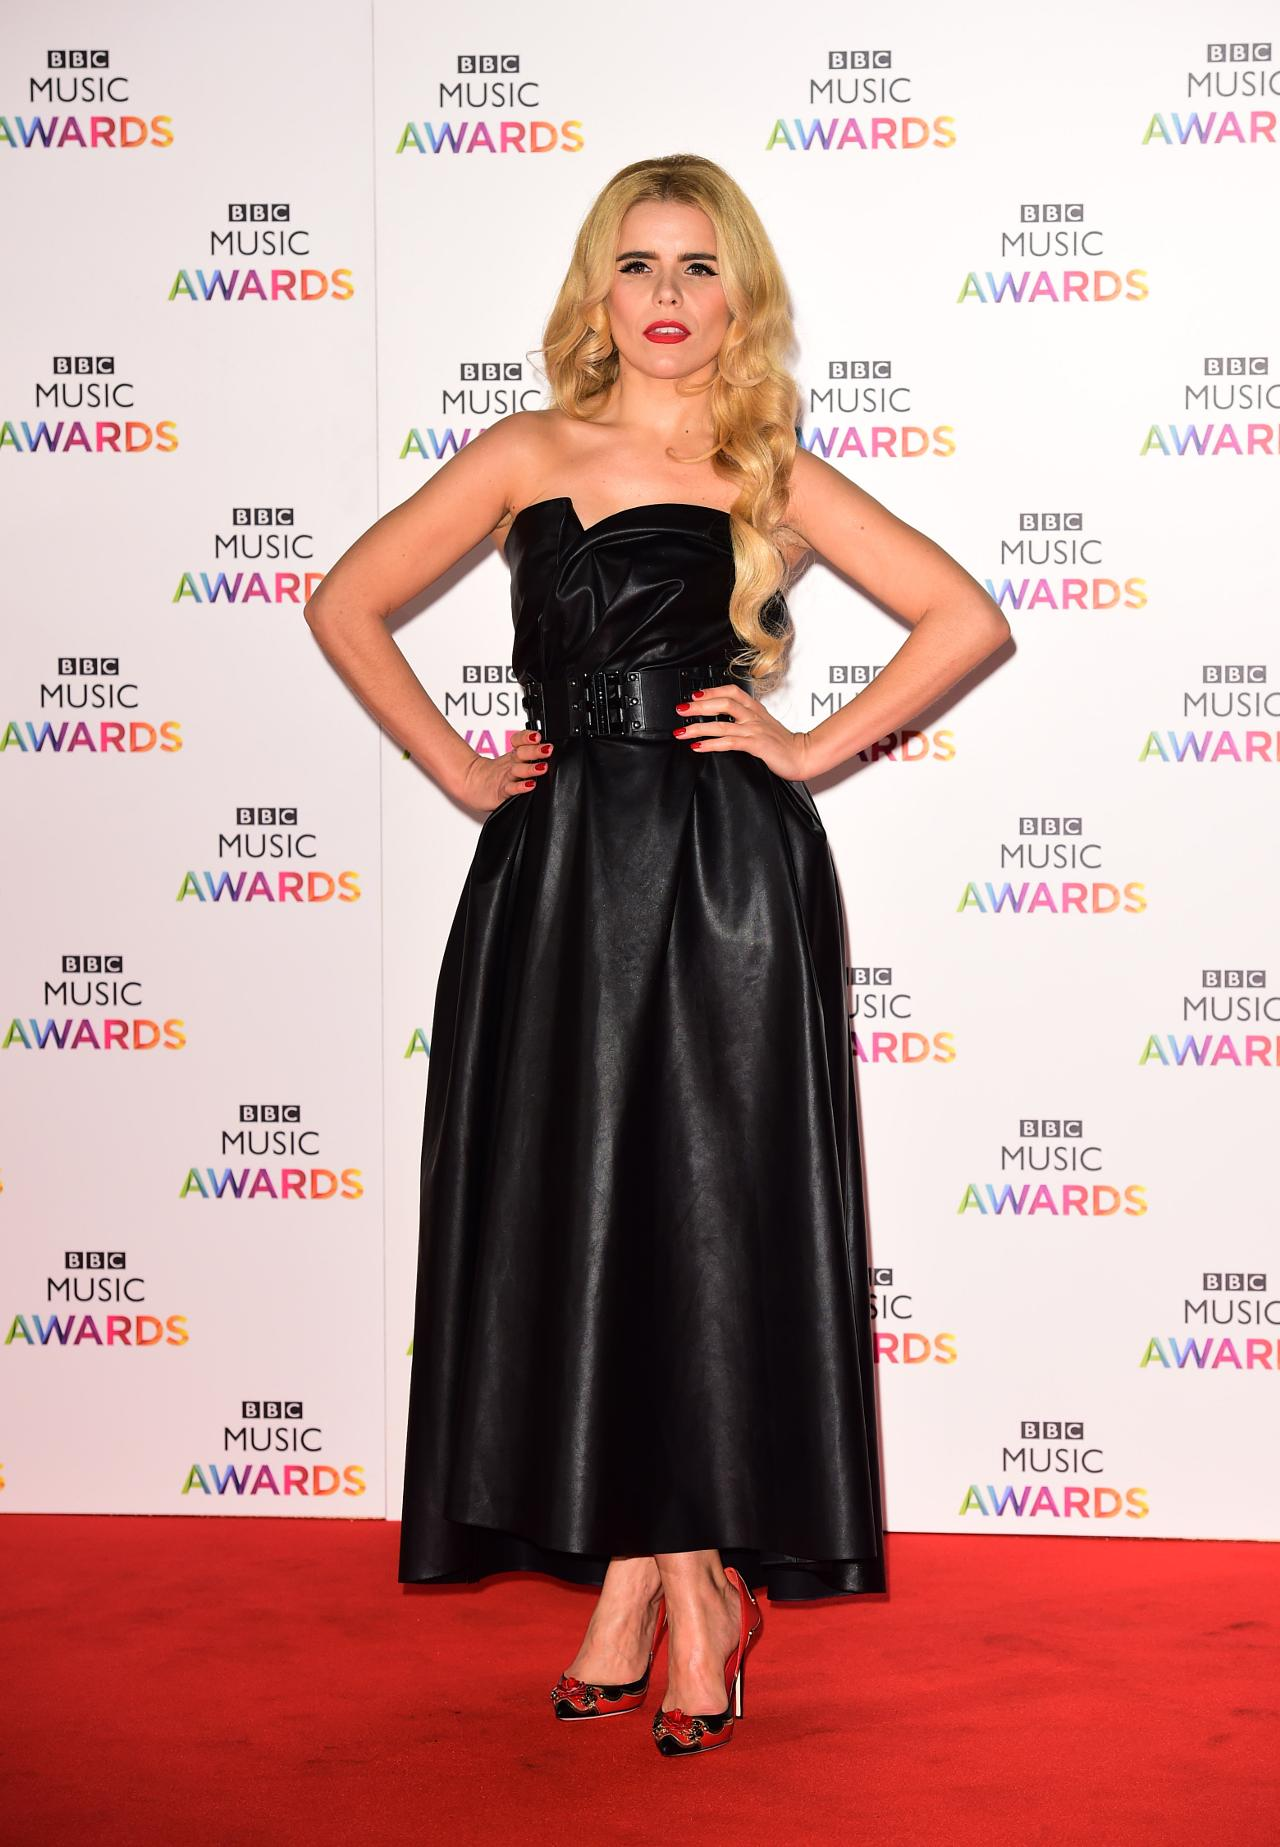 paloma faith picking up the pieces